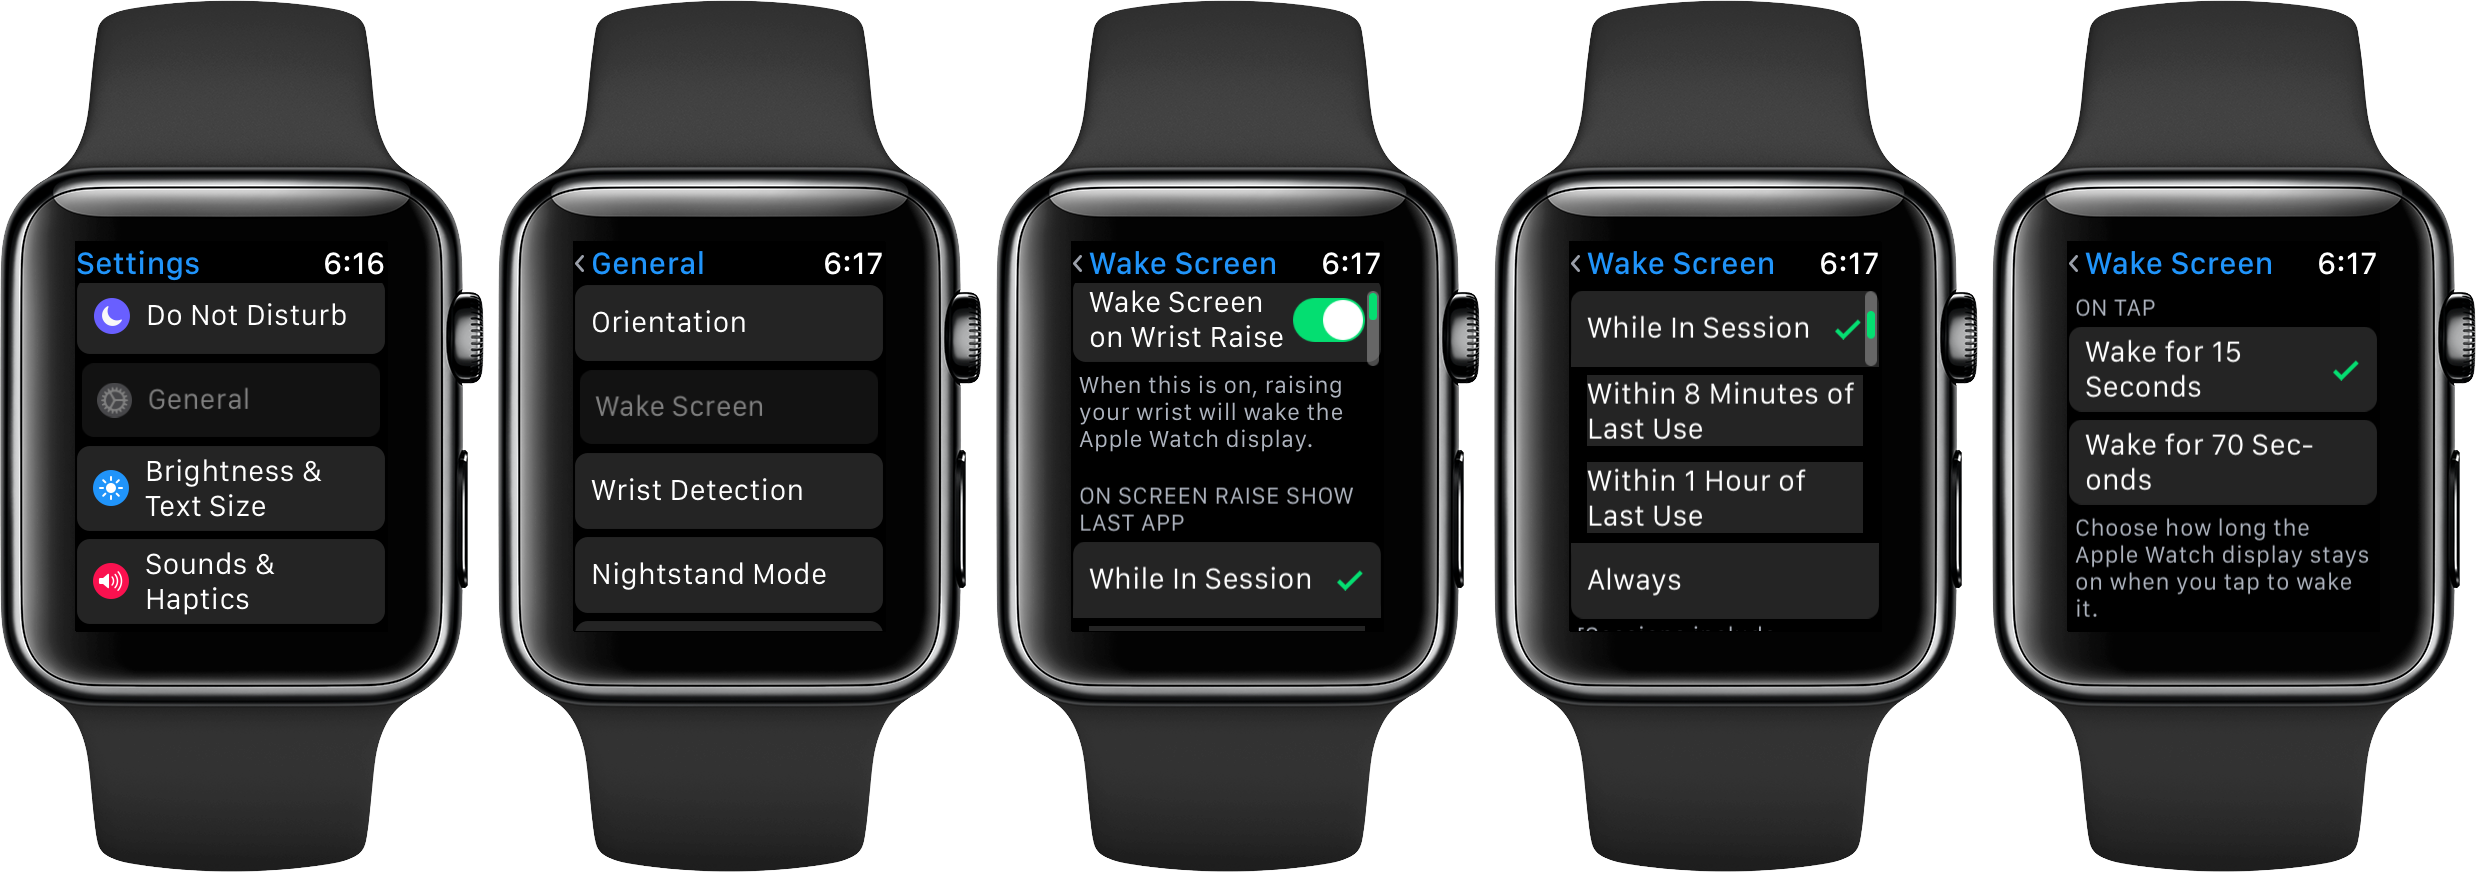 watchOS 3 Wake Screen space gray Apple Watch screenshot 001